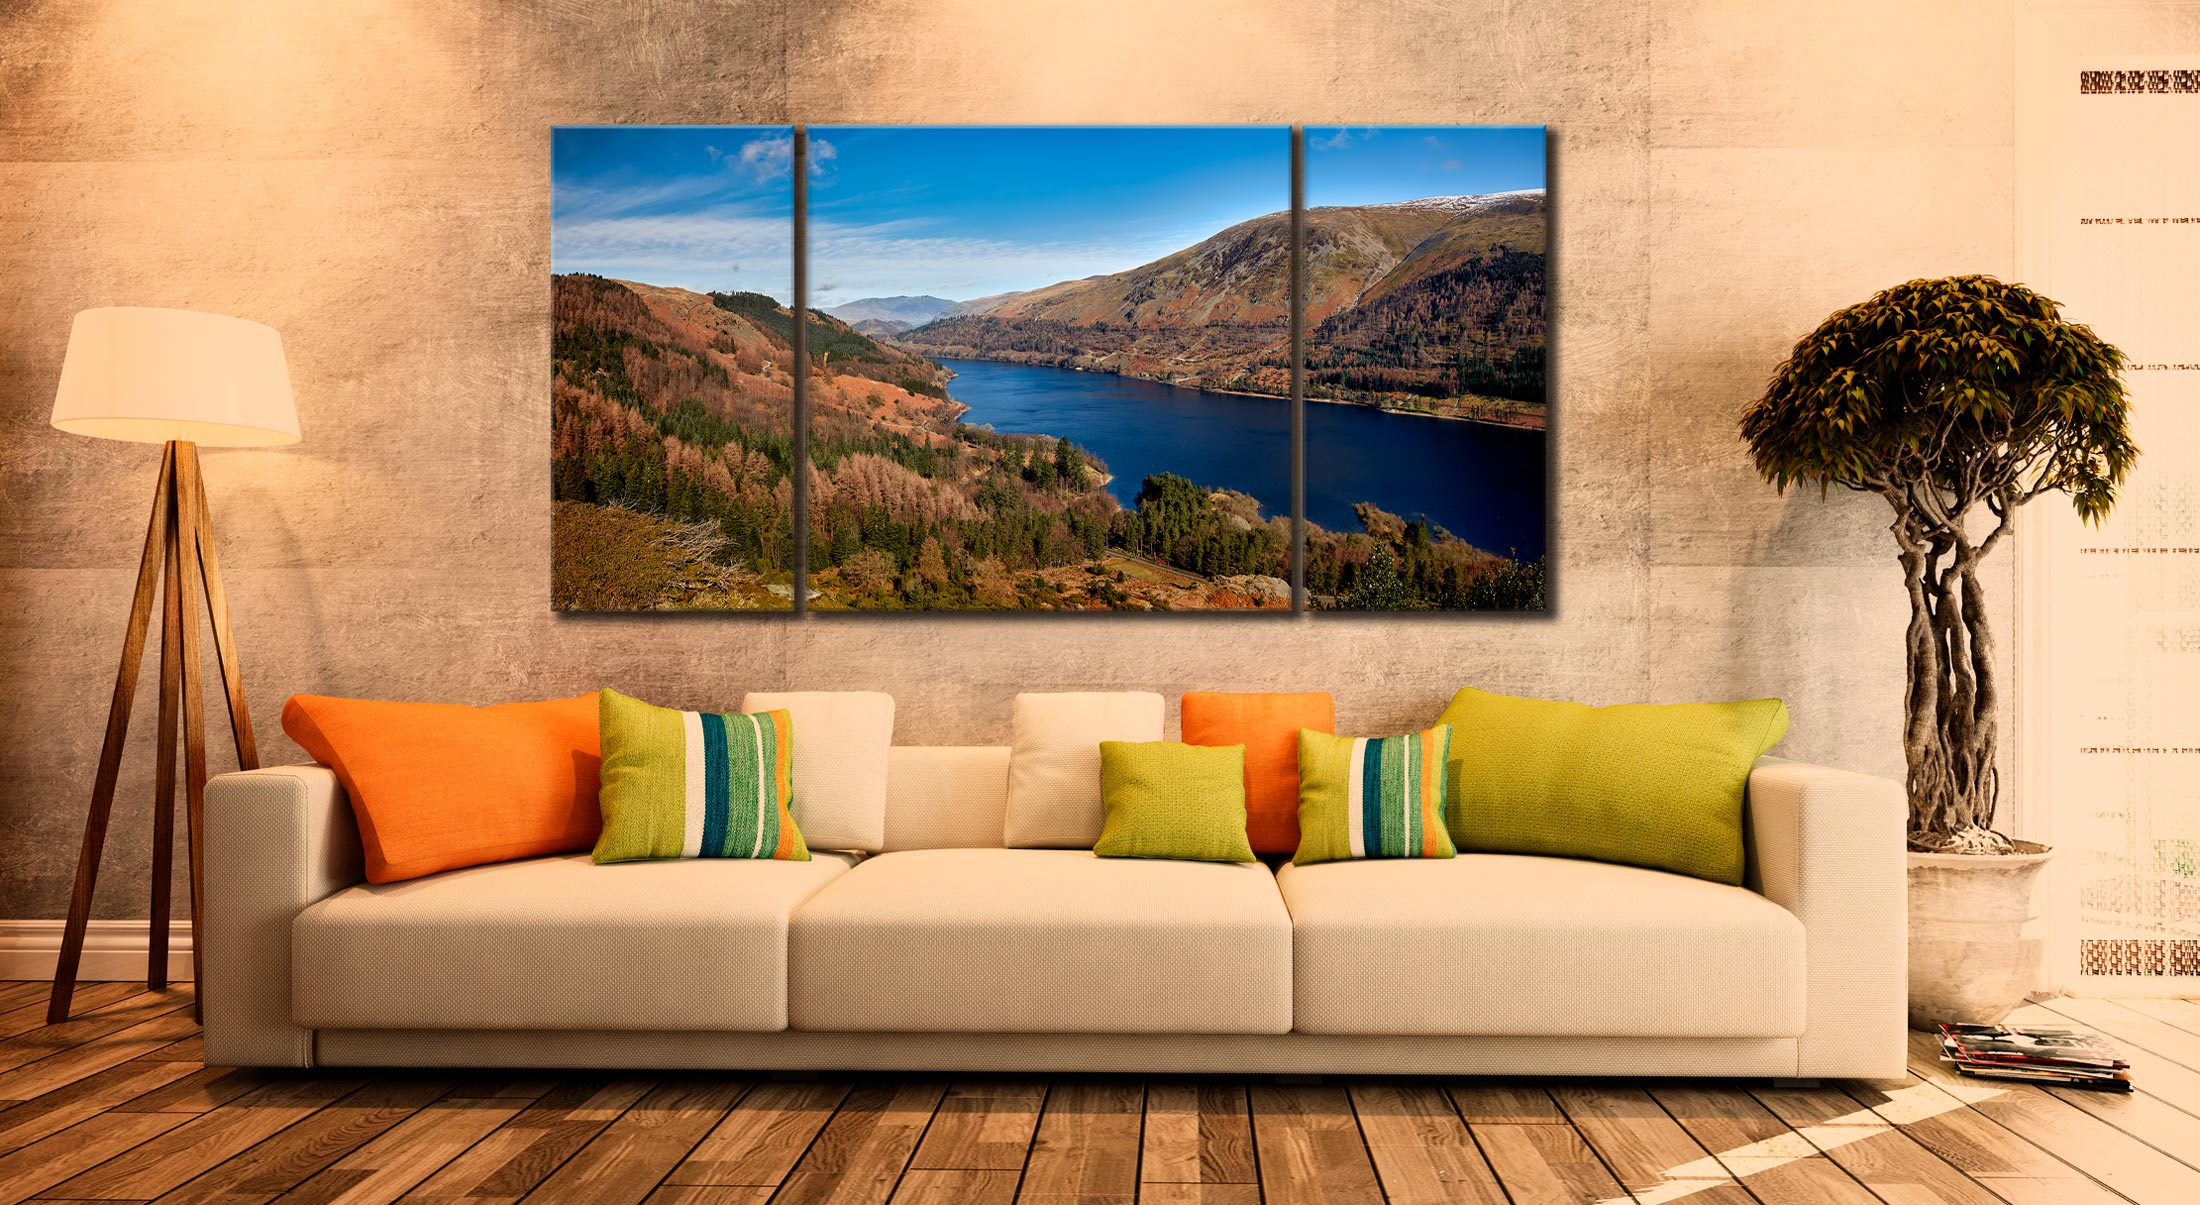 Autumn at Thirlmere - 3 Panel Wide Centre Canvas on Wall